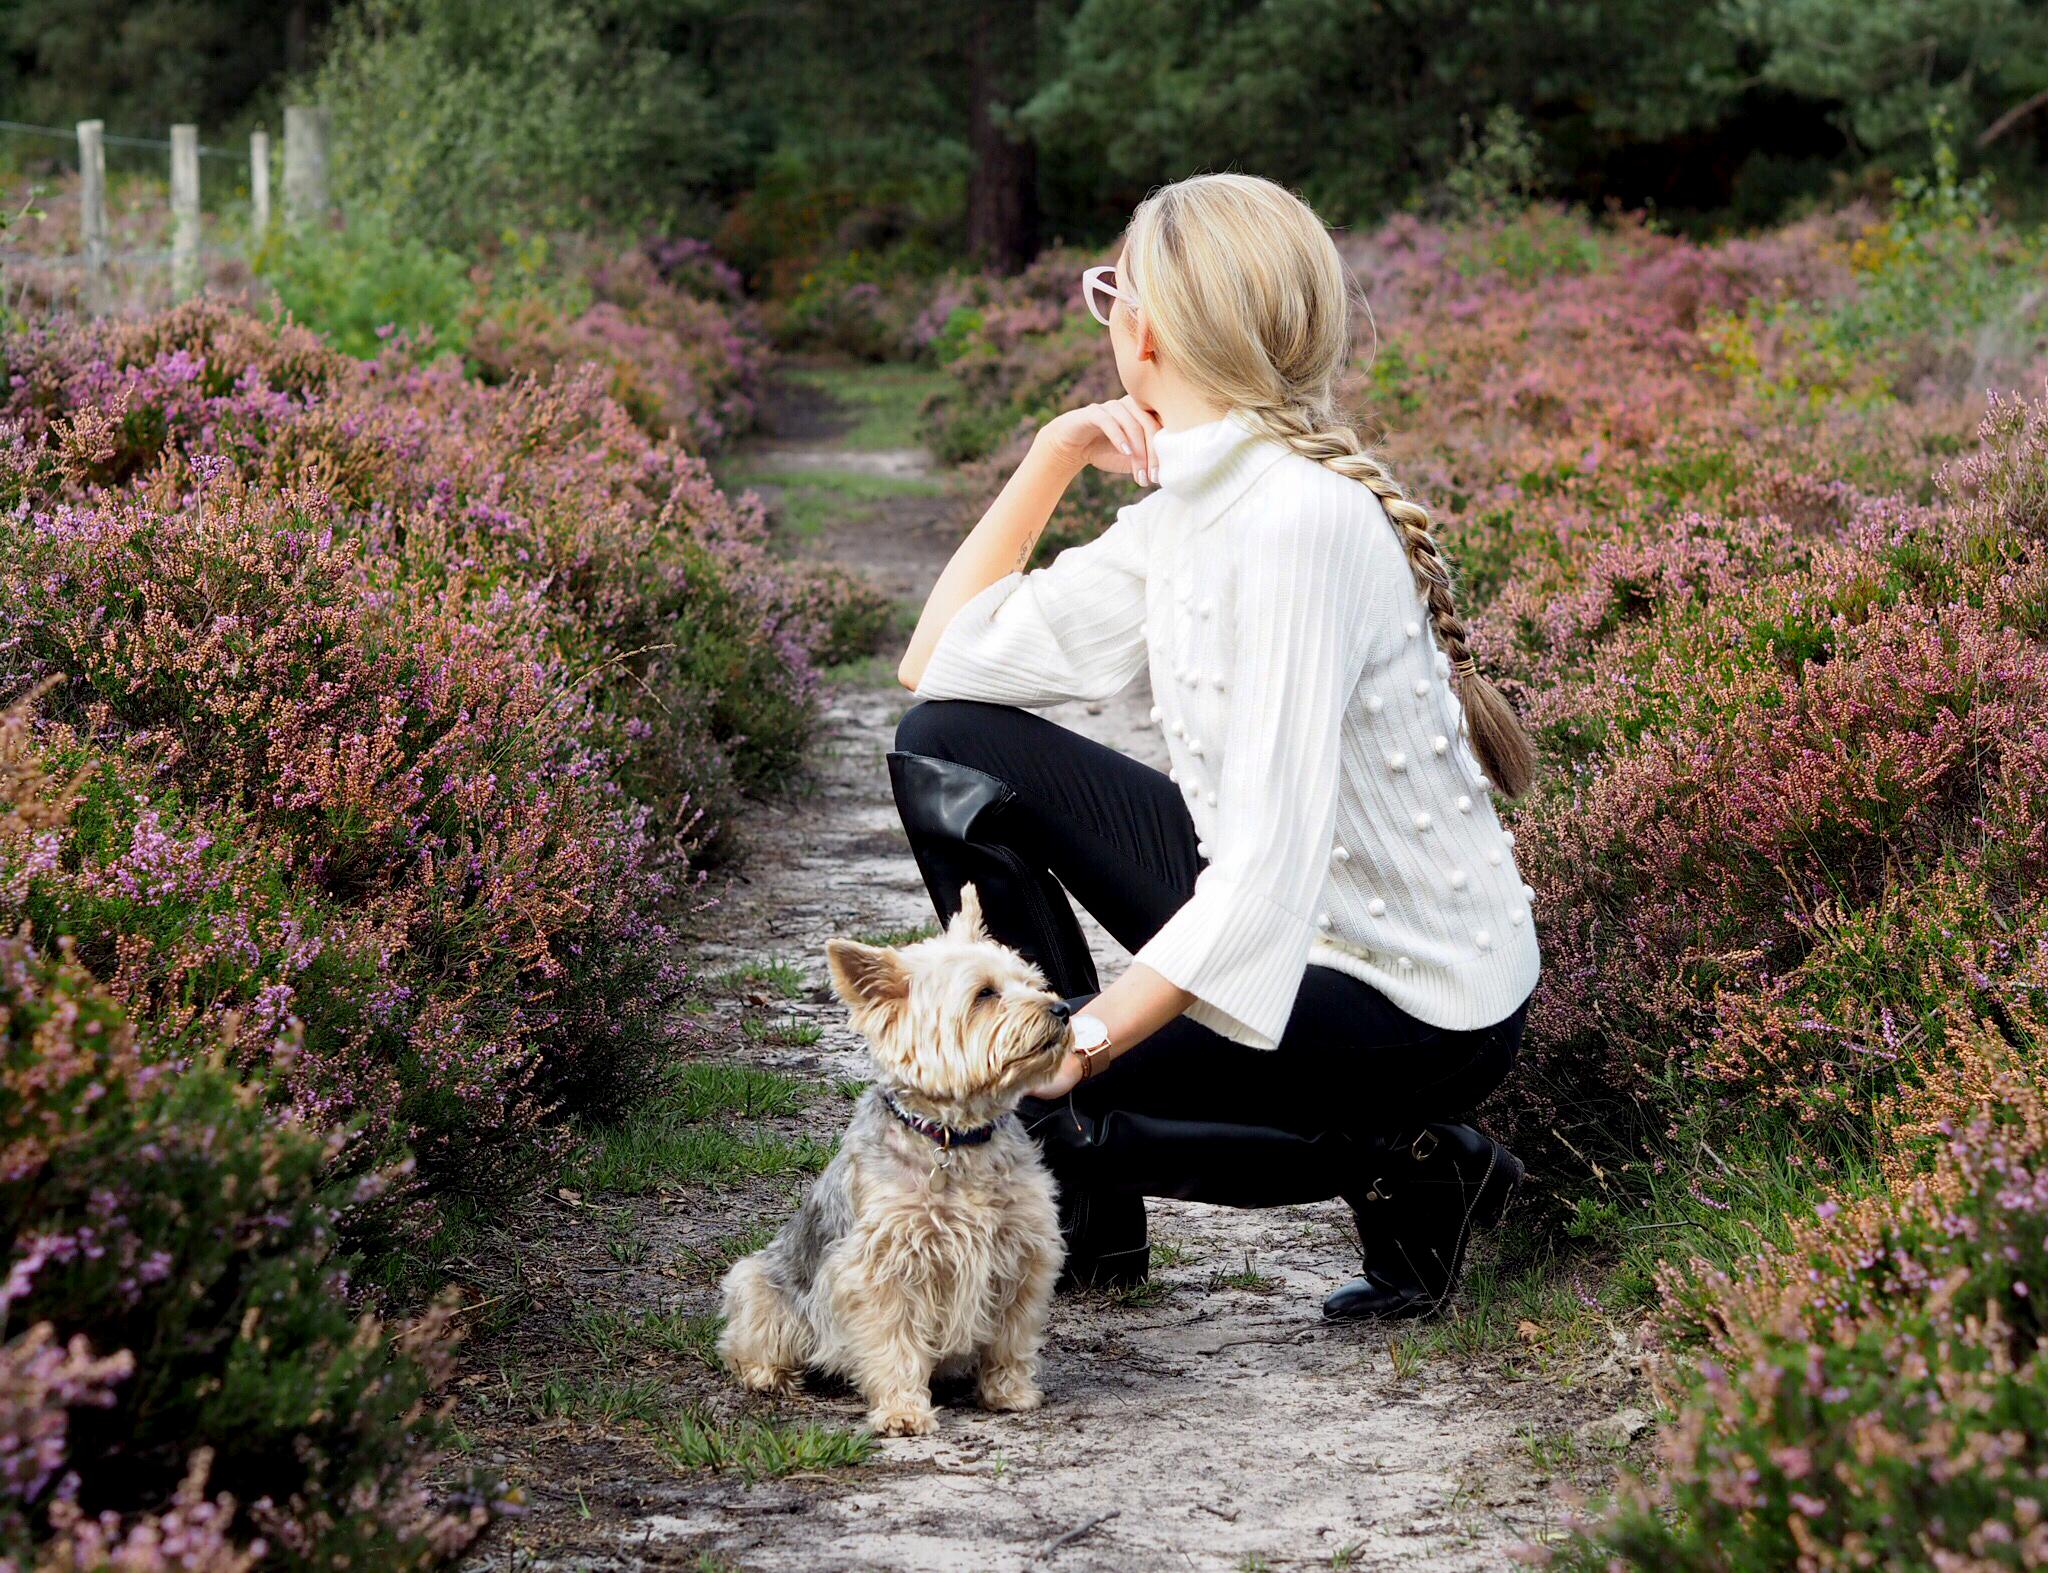 ALICE TEMPERLEY, SOMERSET COLLECTION, JOHN LEWIS, COUNTRY STYLE, FASHION BLOGGER, LONDON FASHION GIRL, LAURA BLAIR